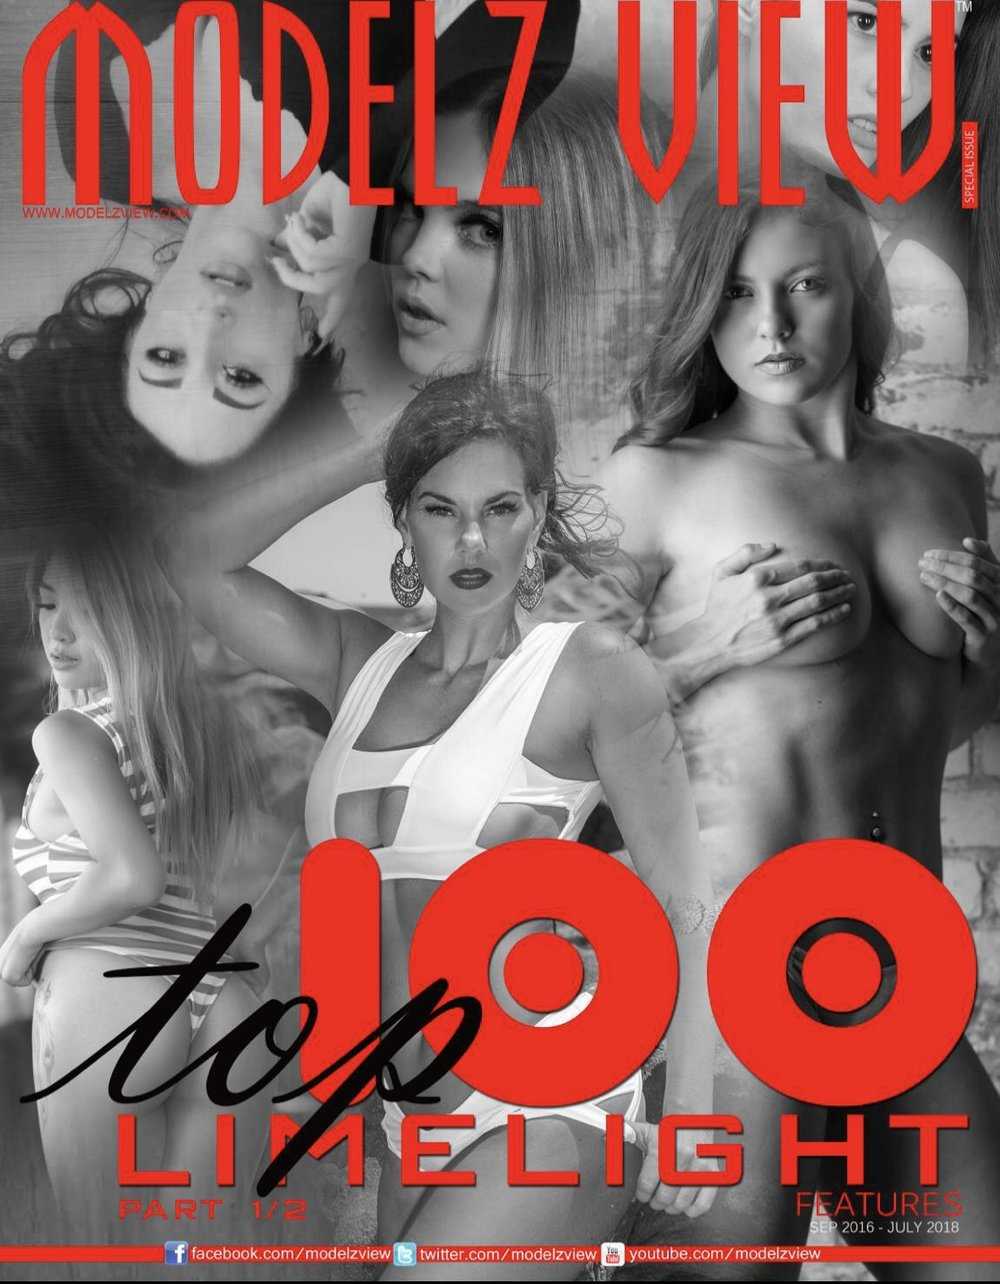 WORLD'S TOP 100 LIMELIGHT MODELS - Special Edition Pt. 1/2 JAN 2018Feature Model - Lucinka TomanovaPhotographer - David Fillion Productionshttp://www.magcloud.com/browse/issue/1511706